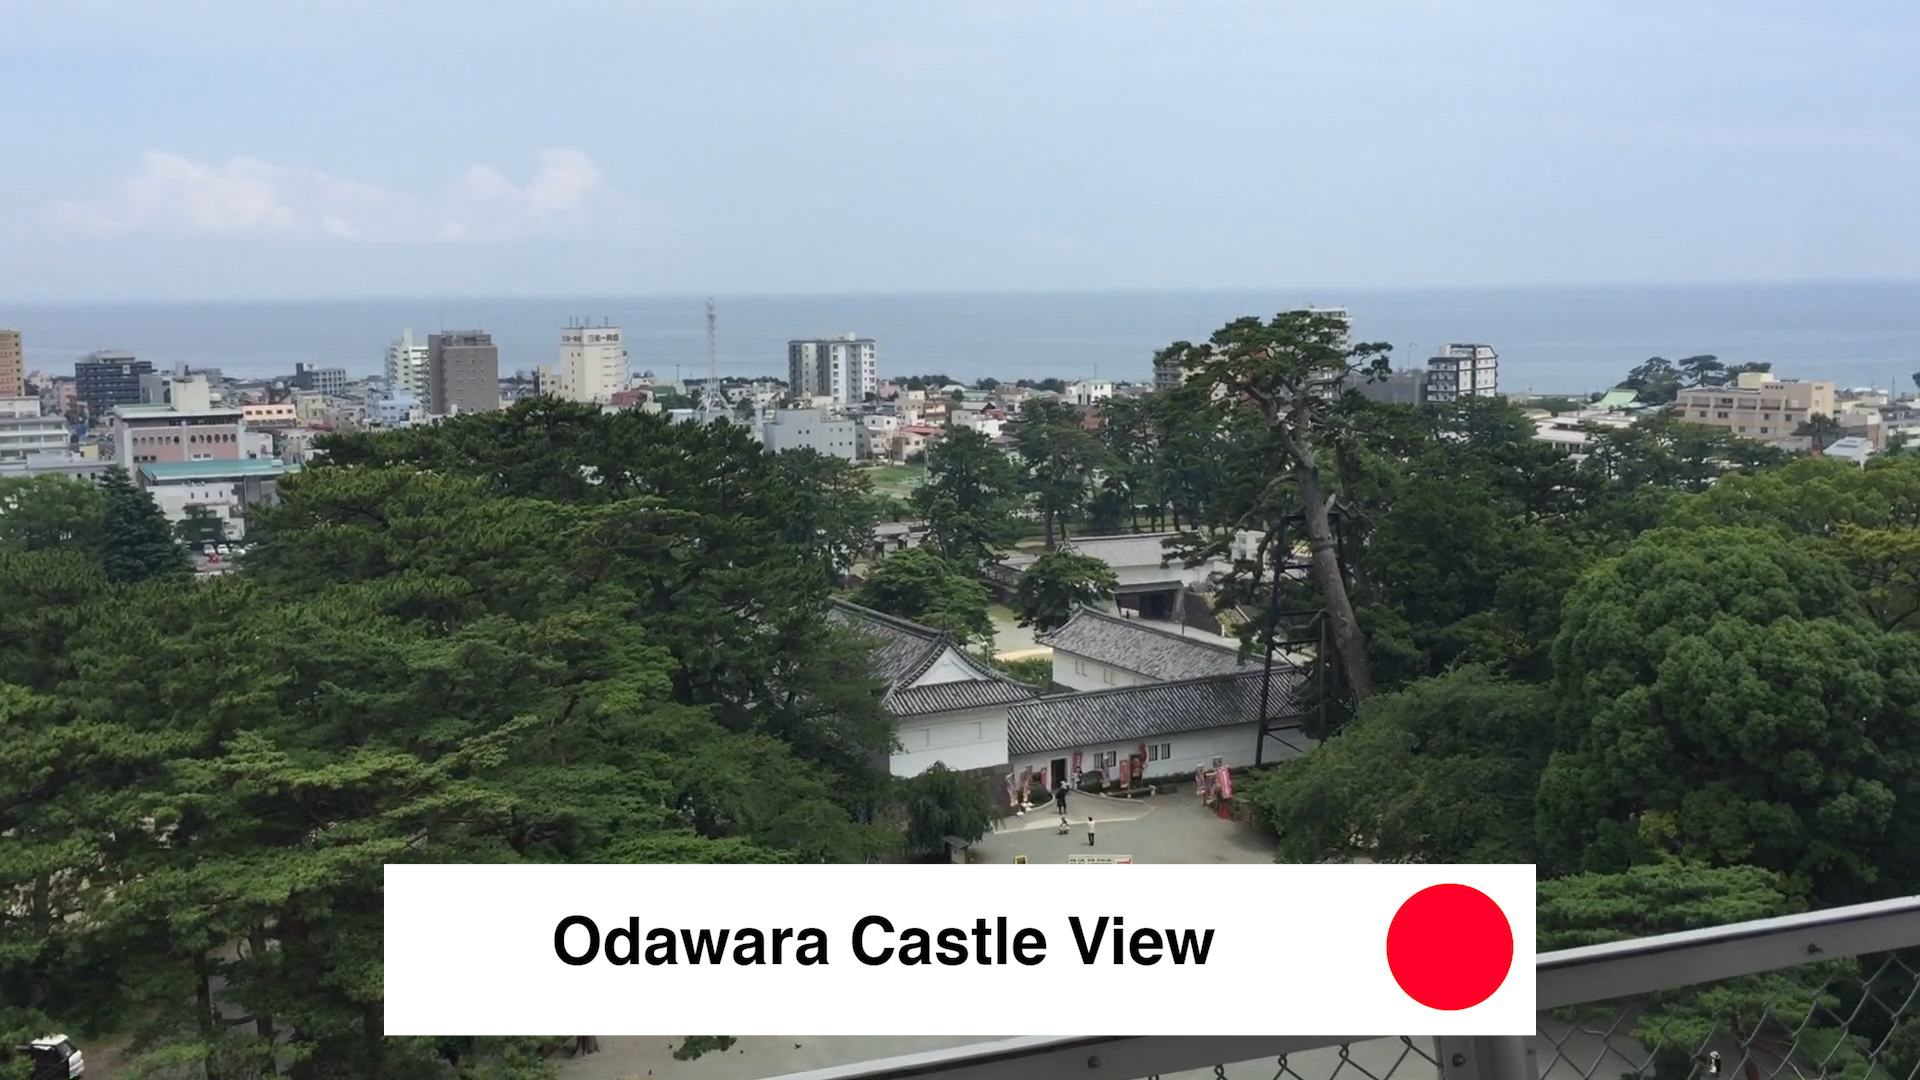 Odawara Castle View - Odawara Castle Japan Guide Review Video - 9 Reasons To See Odawara Castle Kanagawa Japan 🇯🇵 🏯 🌸